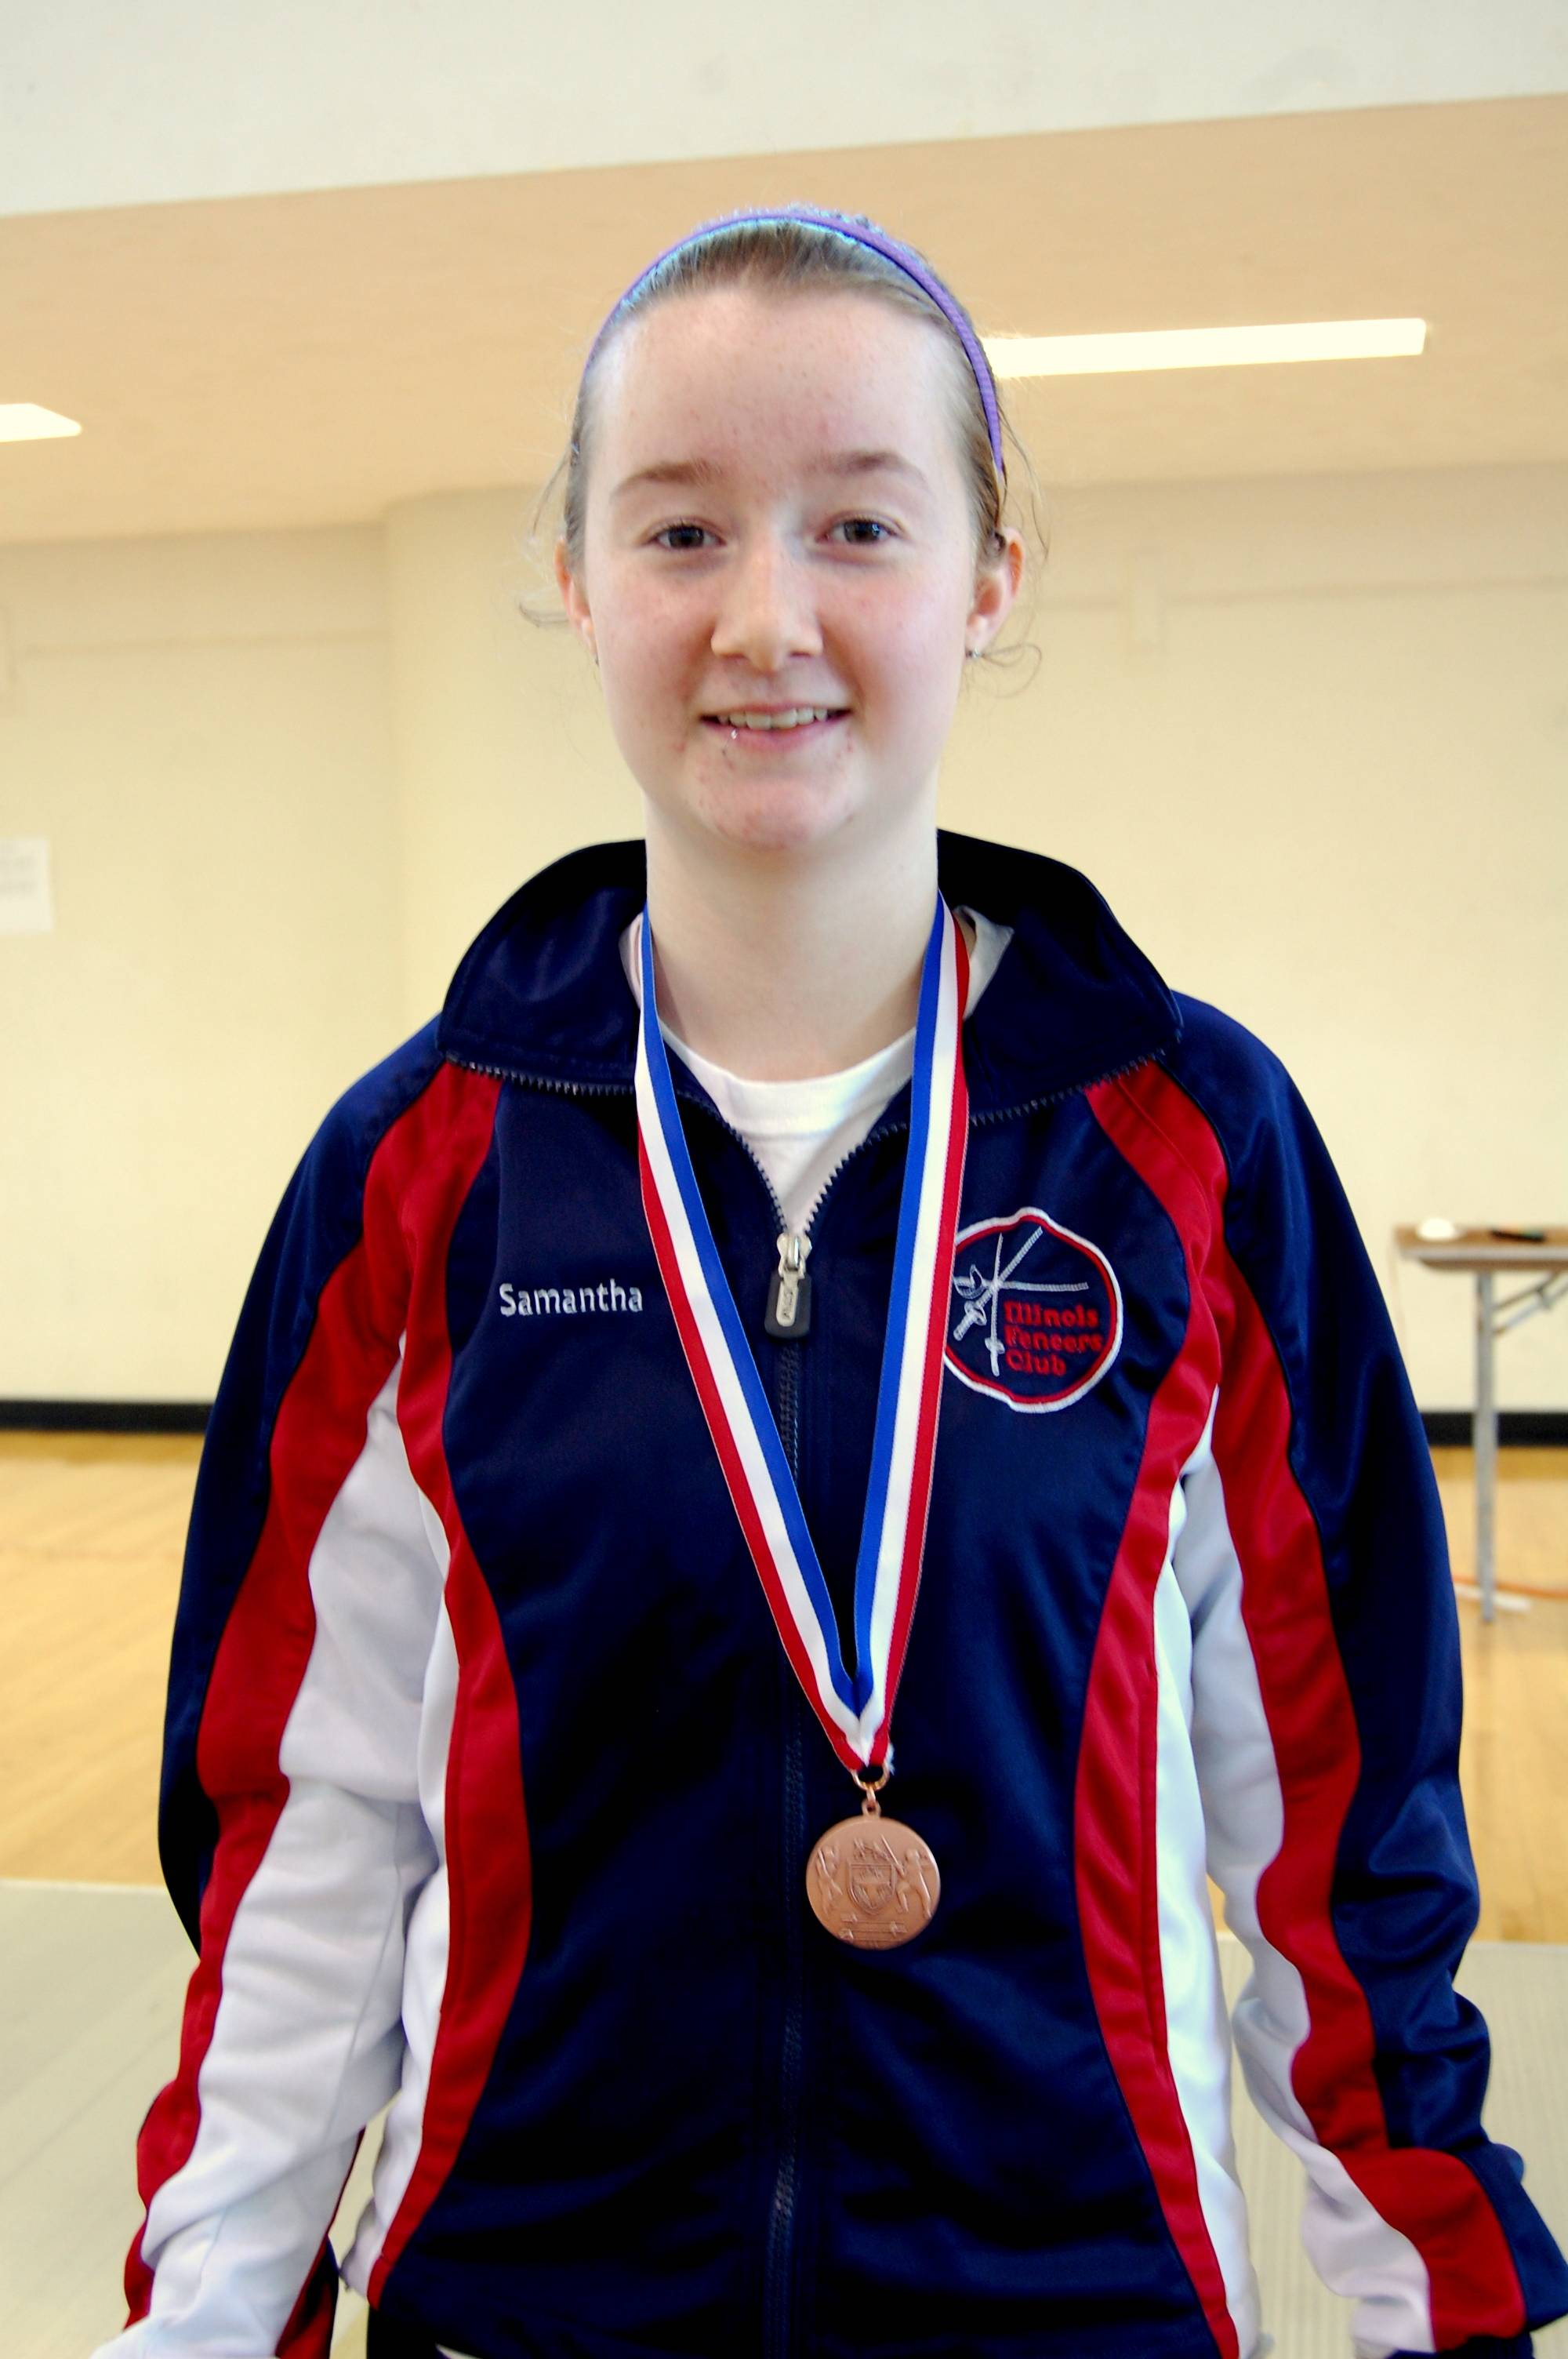 Samantha Doro placed 3rd in Senior Women's Epee at the Burton Open fencing tournament held at Northwestern University